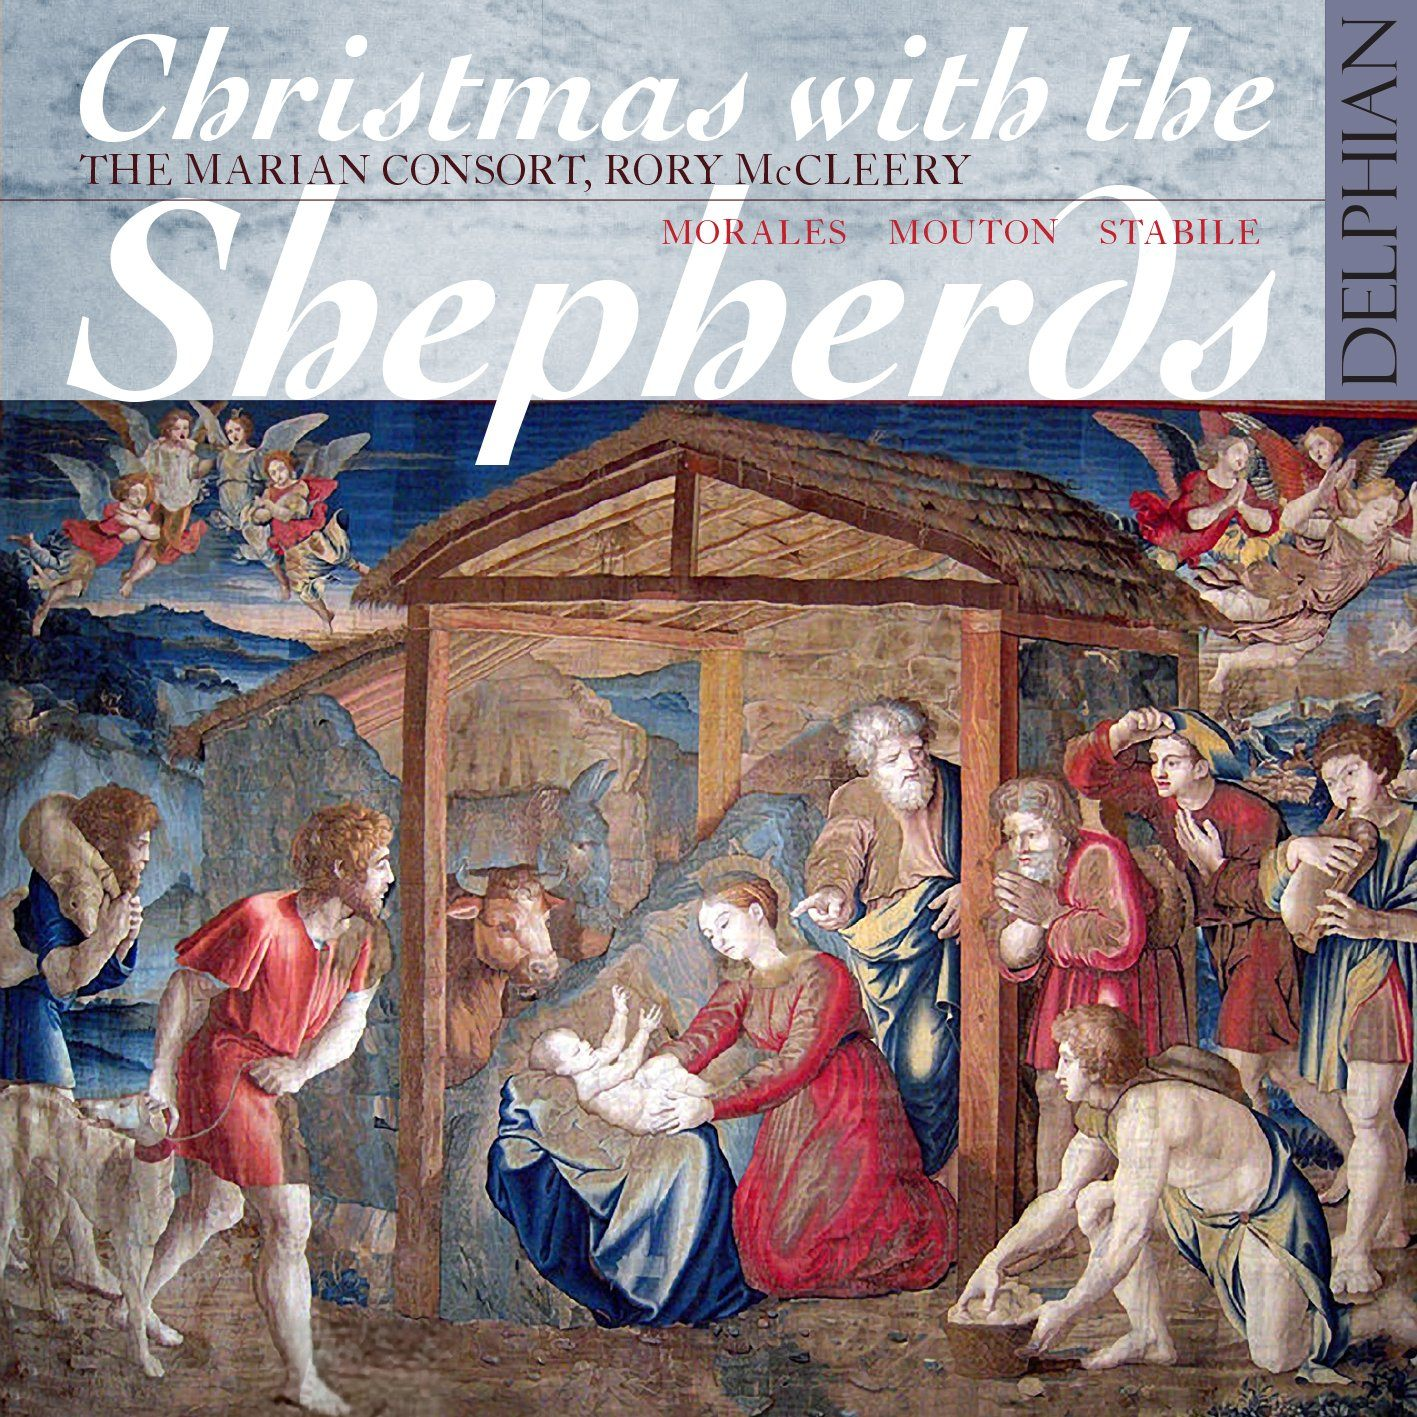 Christmas with the Shepherds: Morales – Mouton – Stabile CD Delphian Records